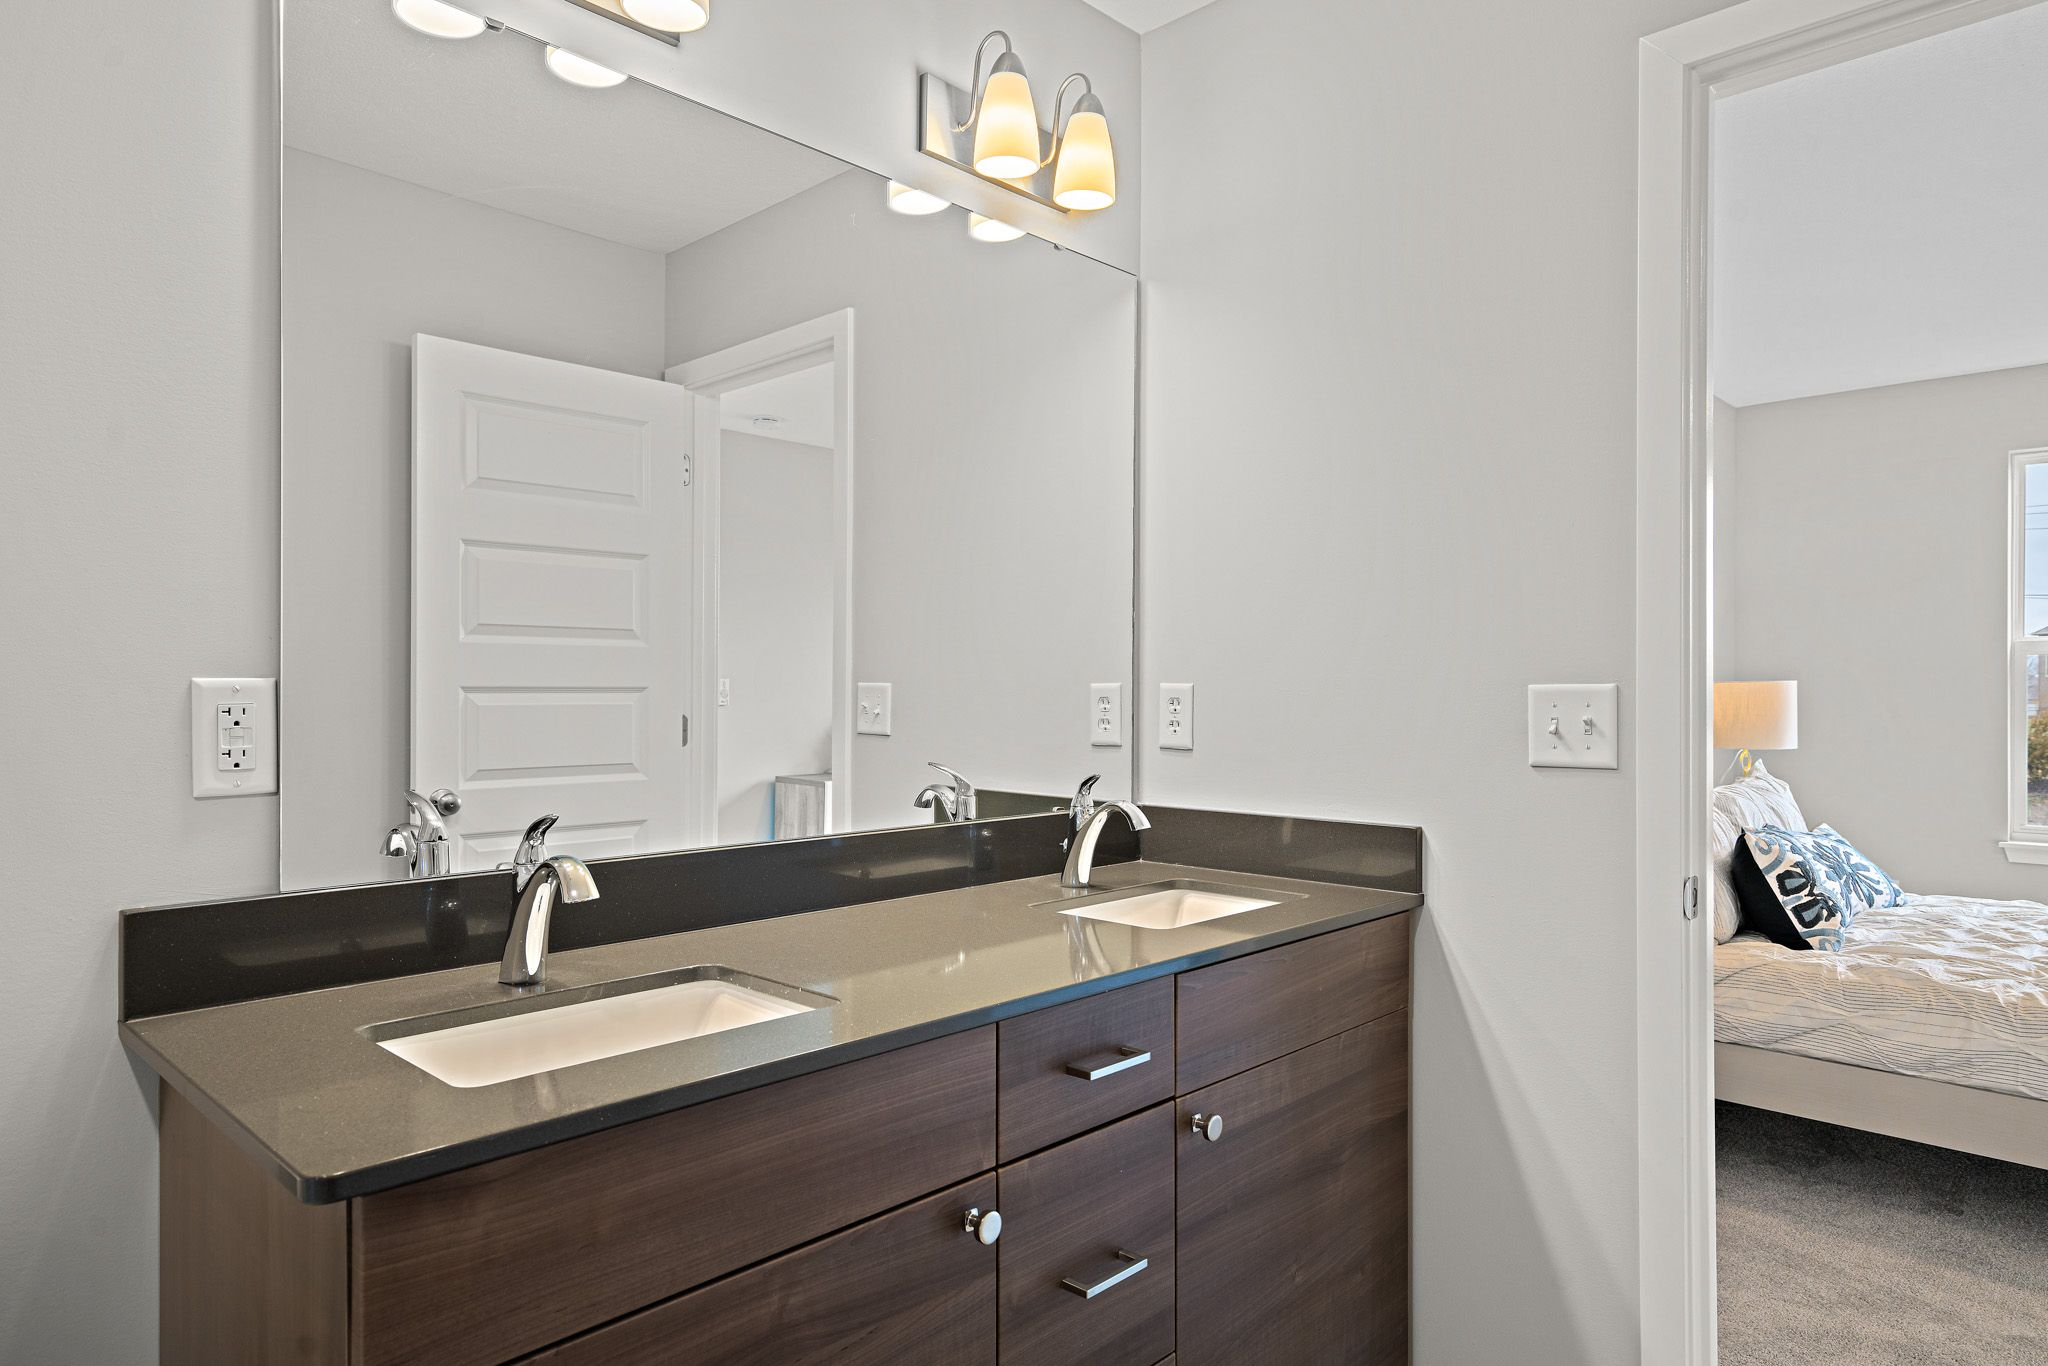 Bathroom featured in the sienna By clover & hive in Des Moines, IA